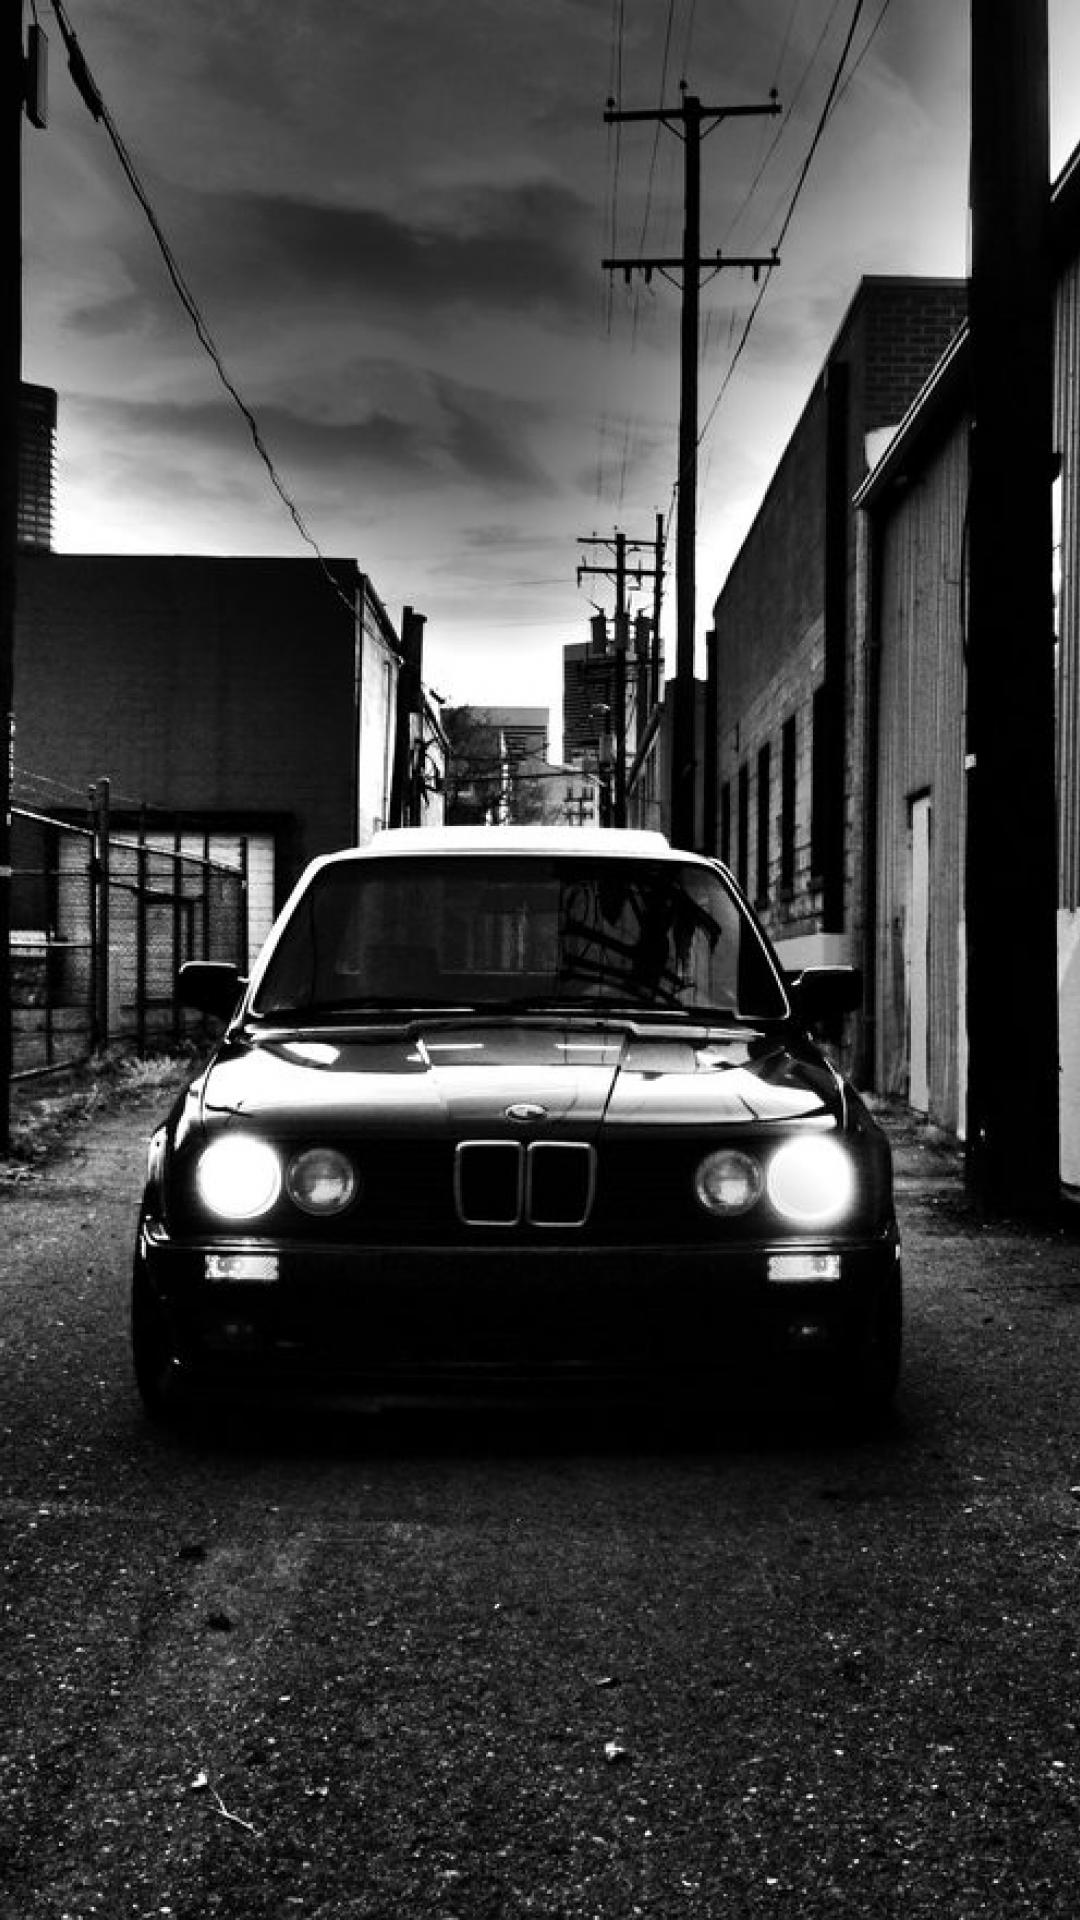 Bmw E30 Iphone Wallpaper Обои для 5 5 Quot Iphone 6 Plus 6s Plus